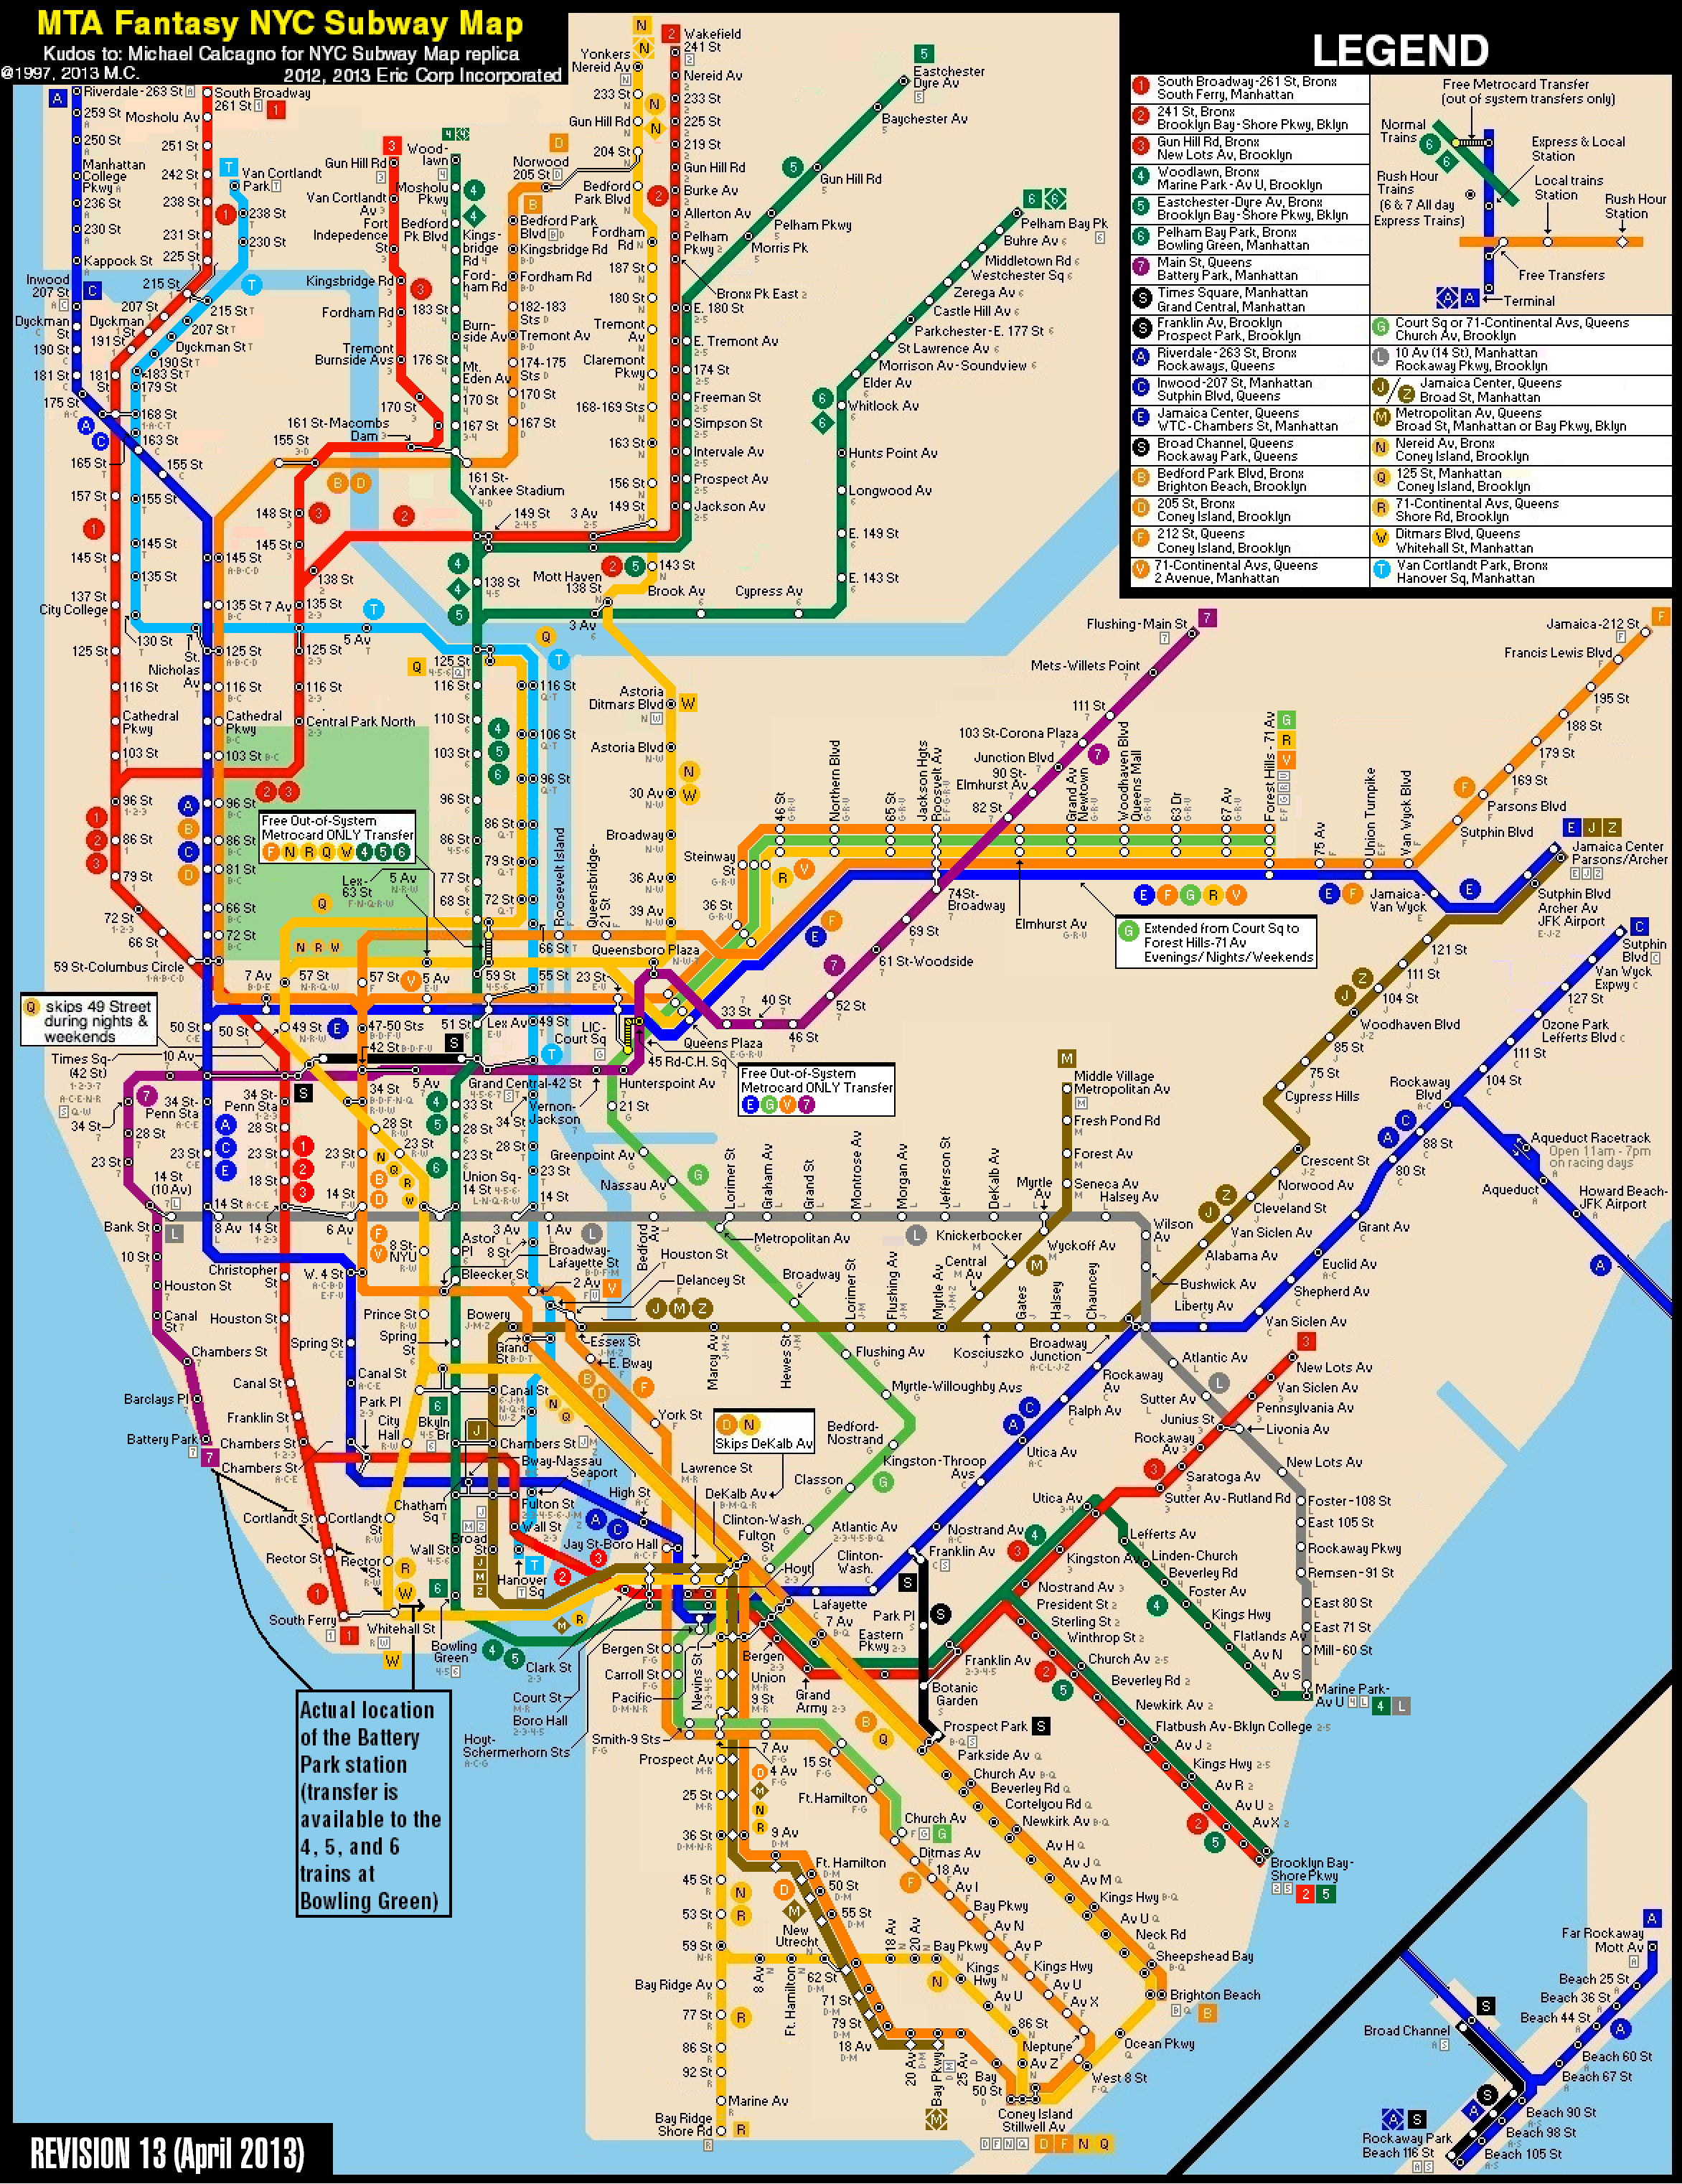 Nyc Simple Subway Map.New York Subway Map New York City Subway Fantasy Map Revision 13